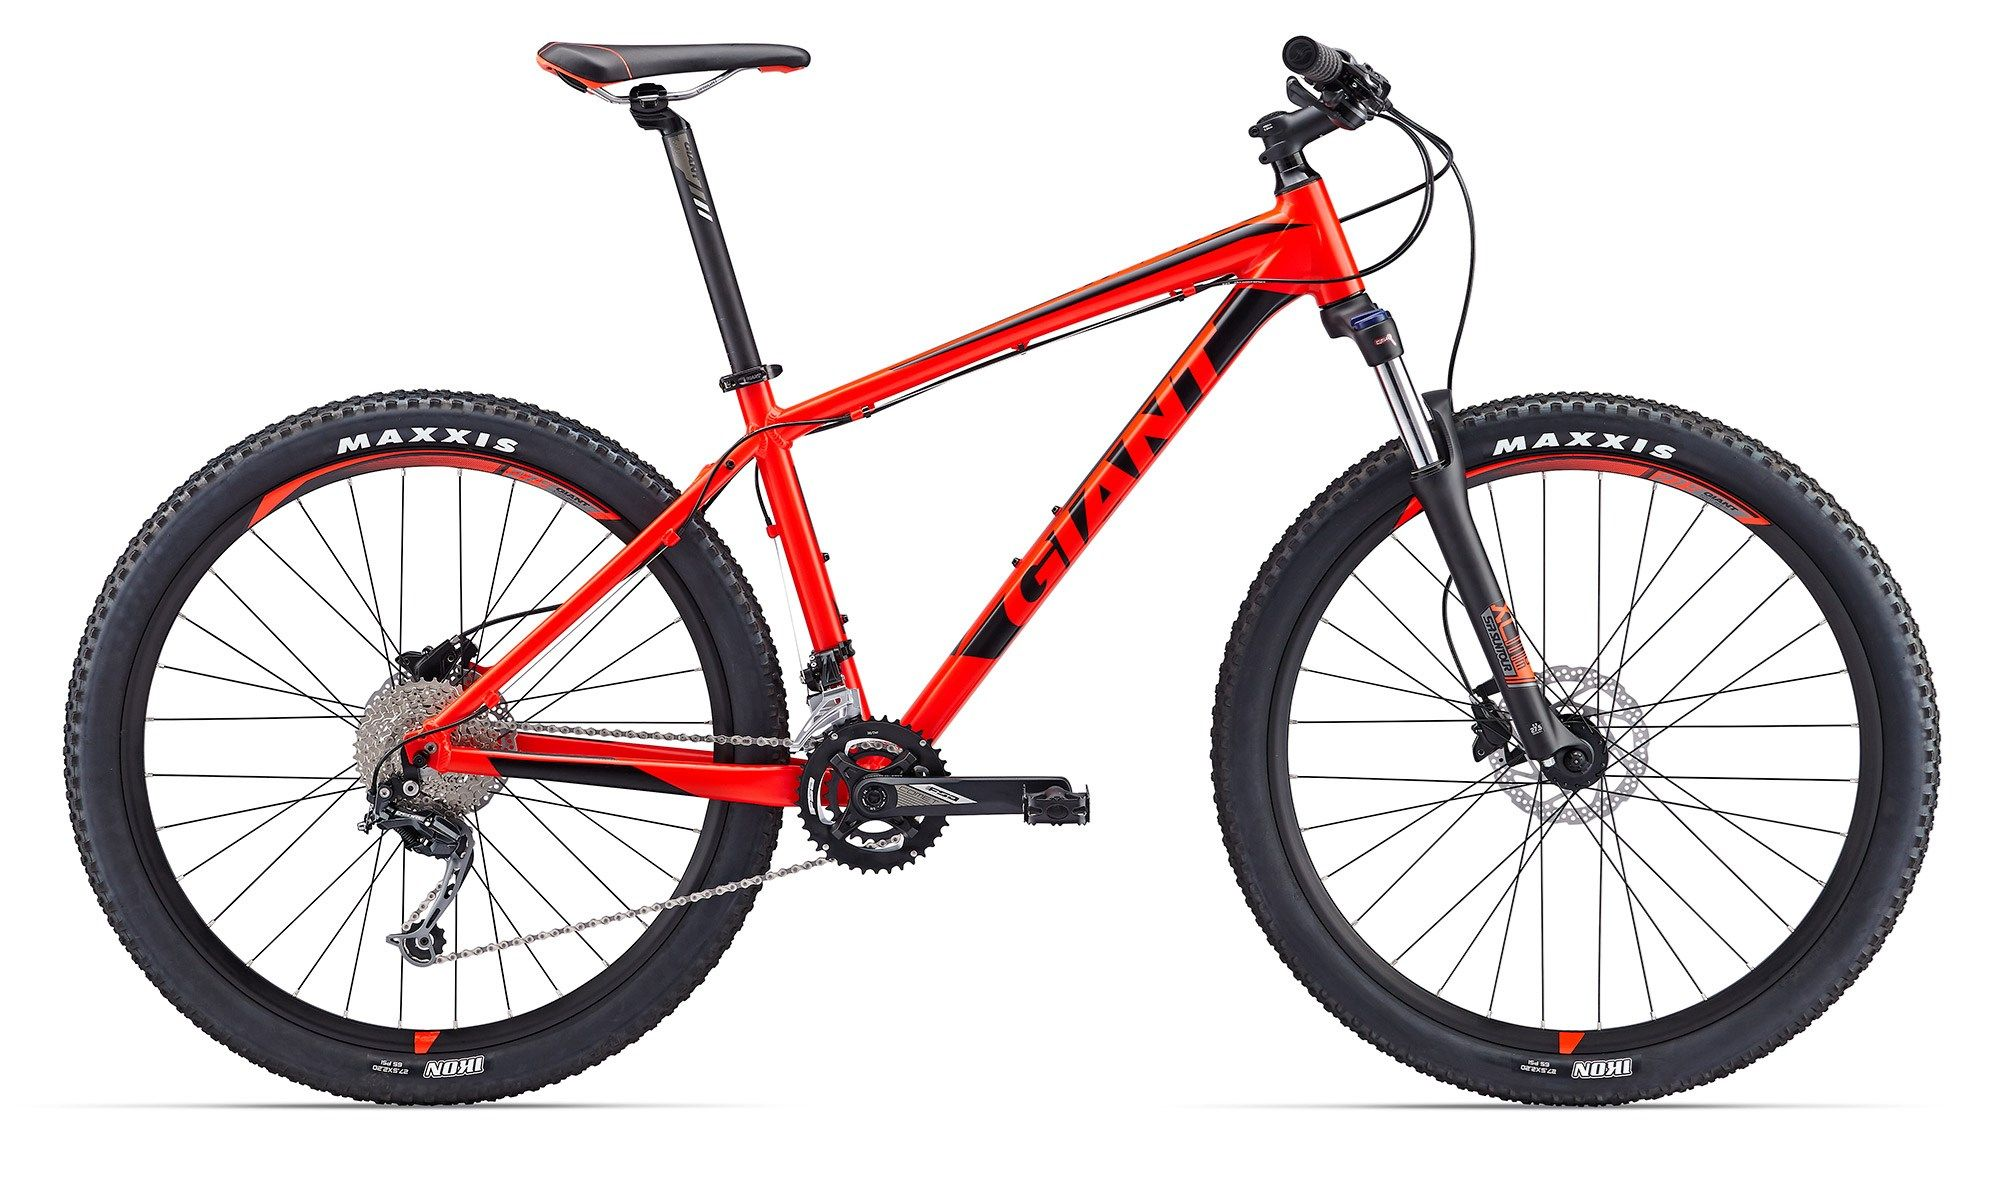 Talon 2 2020 Men Xc Bike Giant Bicycles United States Giant Bicycles Bicycle Hardtail Mountain Bike